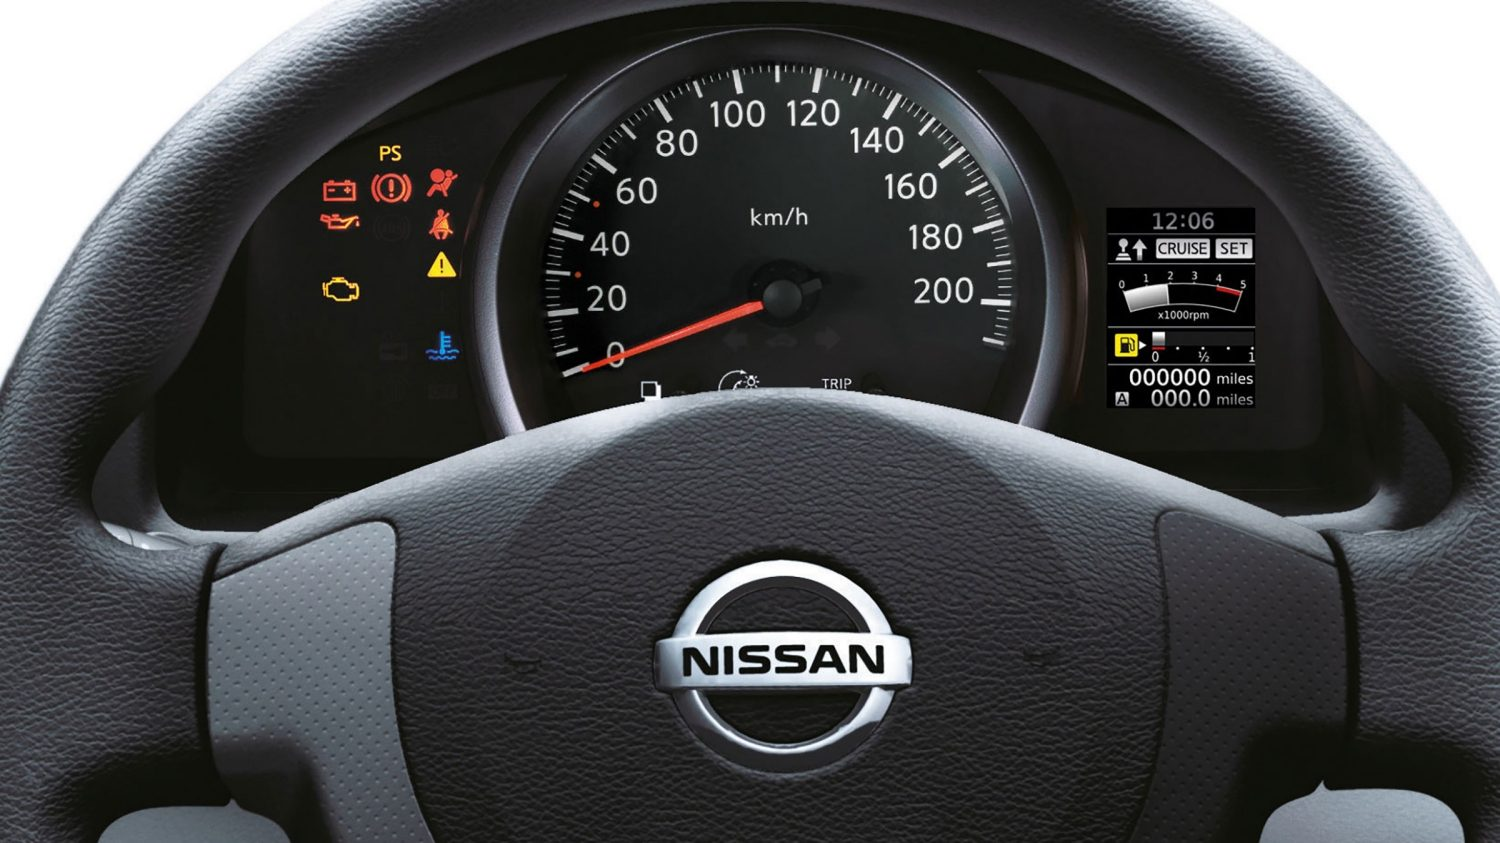 Nissan NV200 - Steering wheel